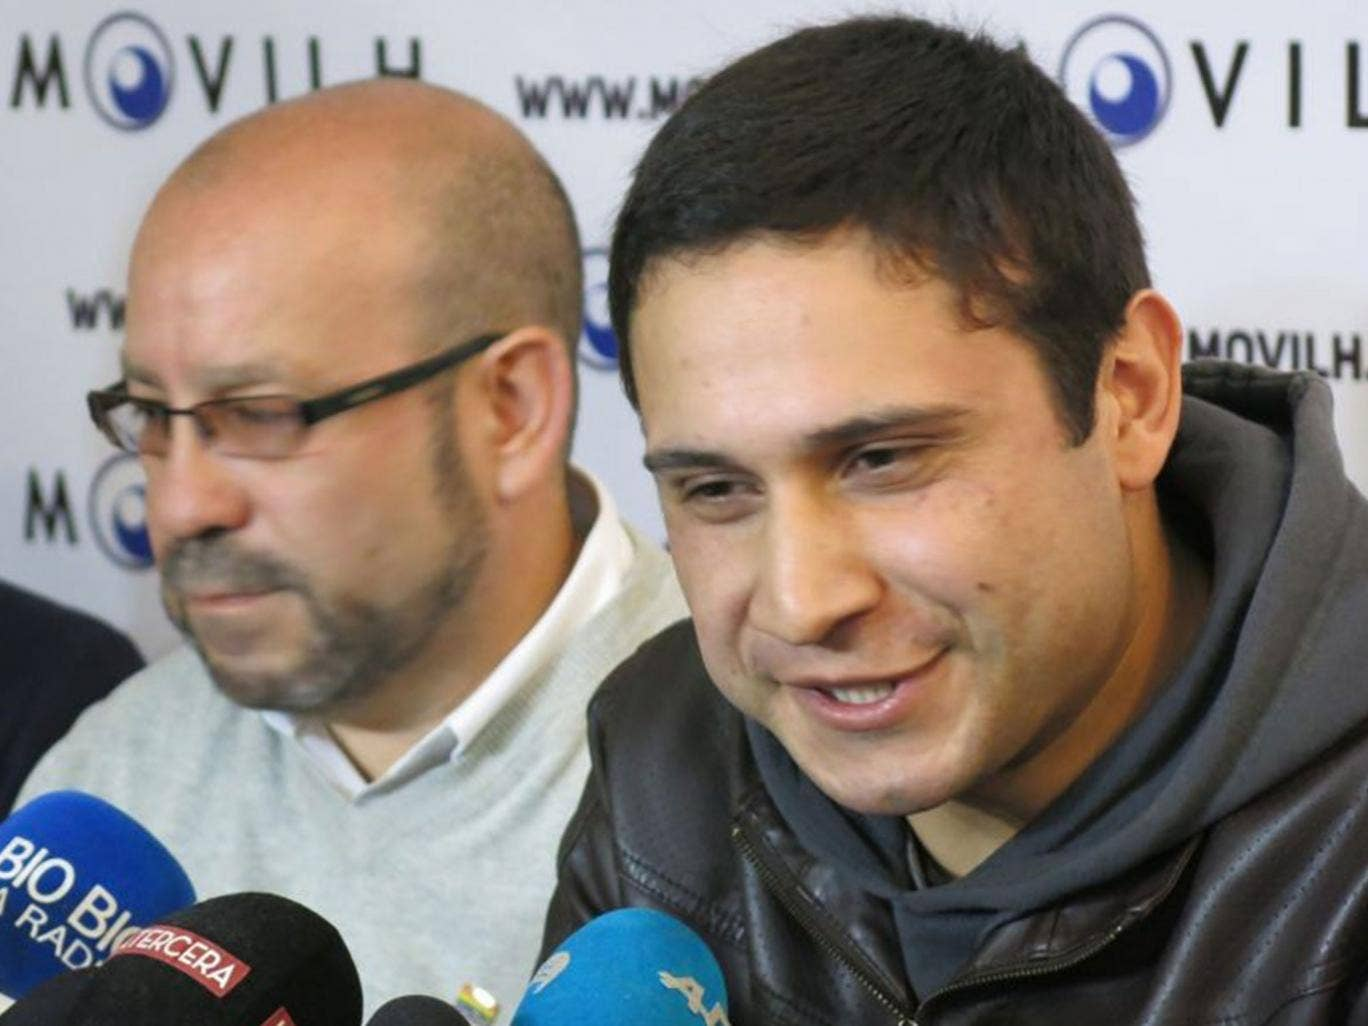 Chilean sailor Mauricio Ruiz, right, reveals he is gay during a press conference in Santiago